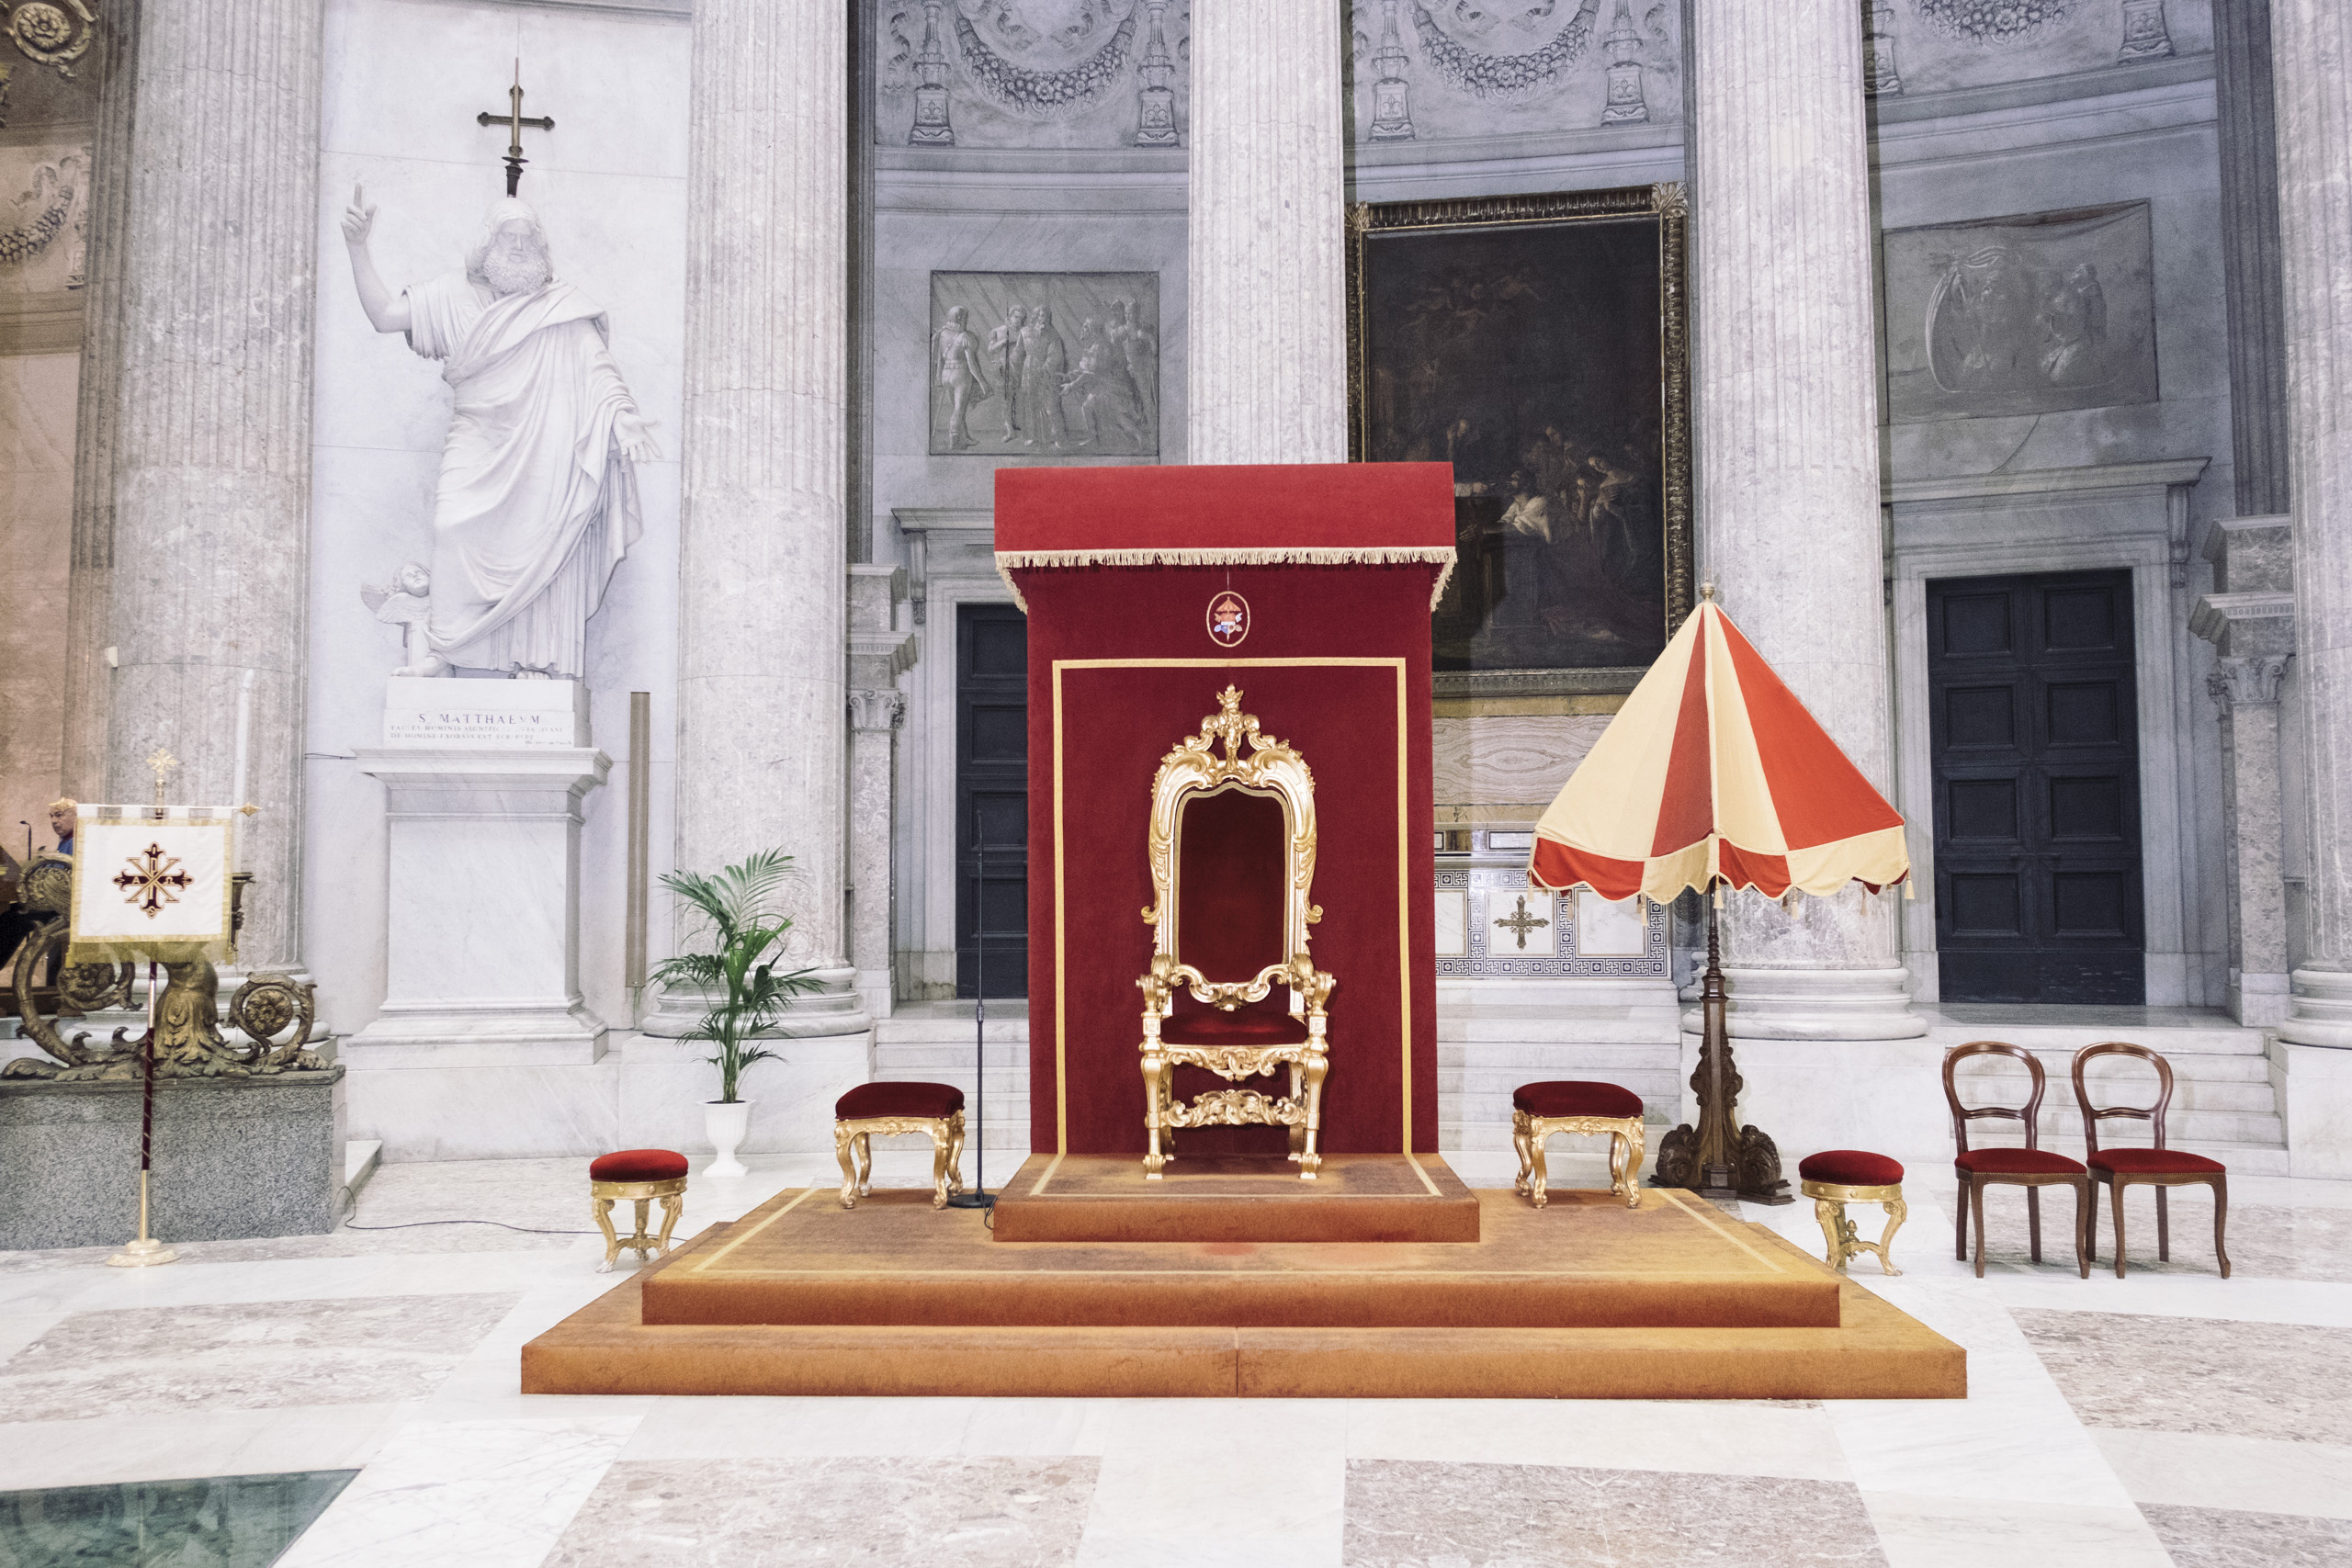 Throne in the San Francesco di Paola church, in Naples, before the investiture ceremony of the new knights of the Sacred Military Constantinian Order of Saint George, April, 2016.